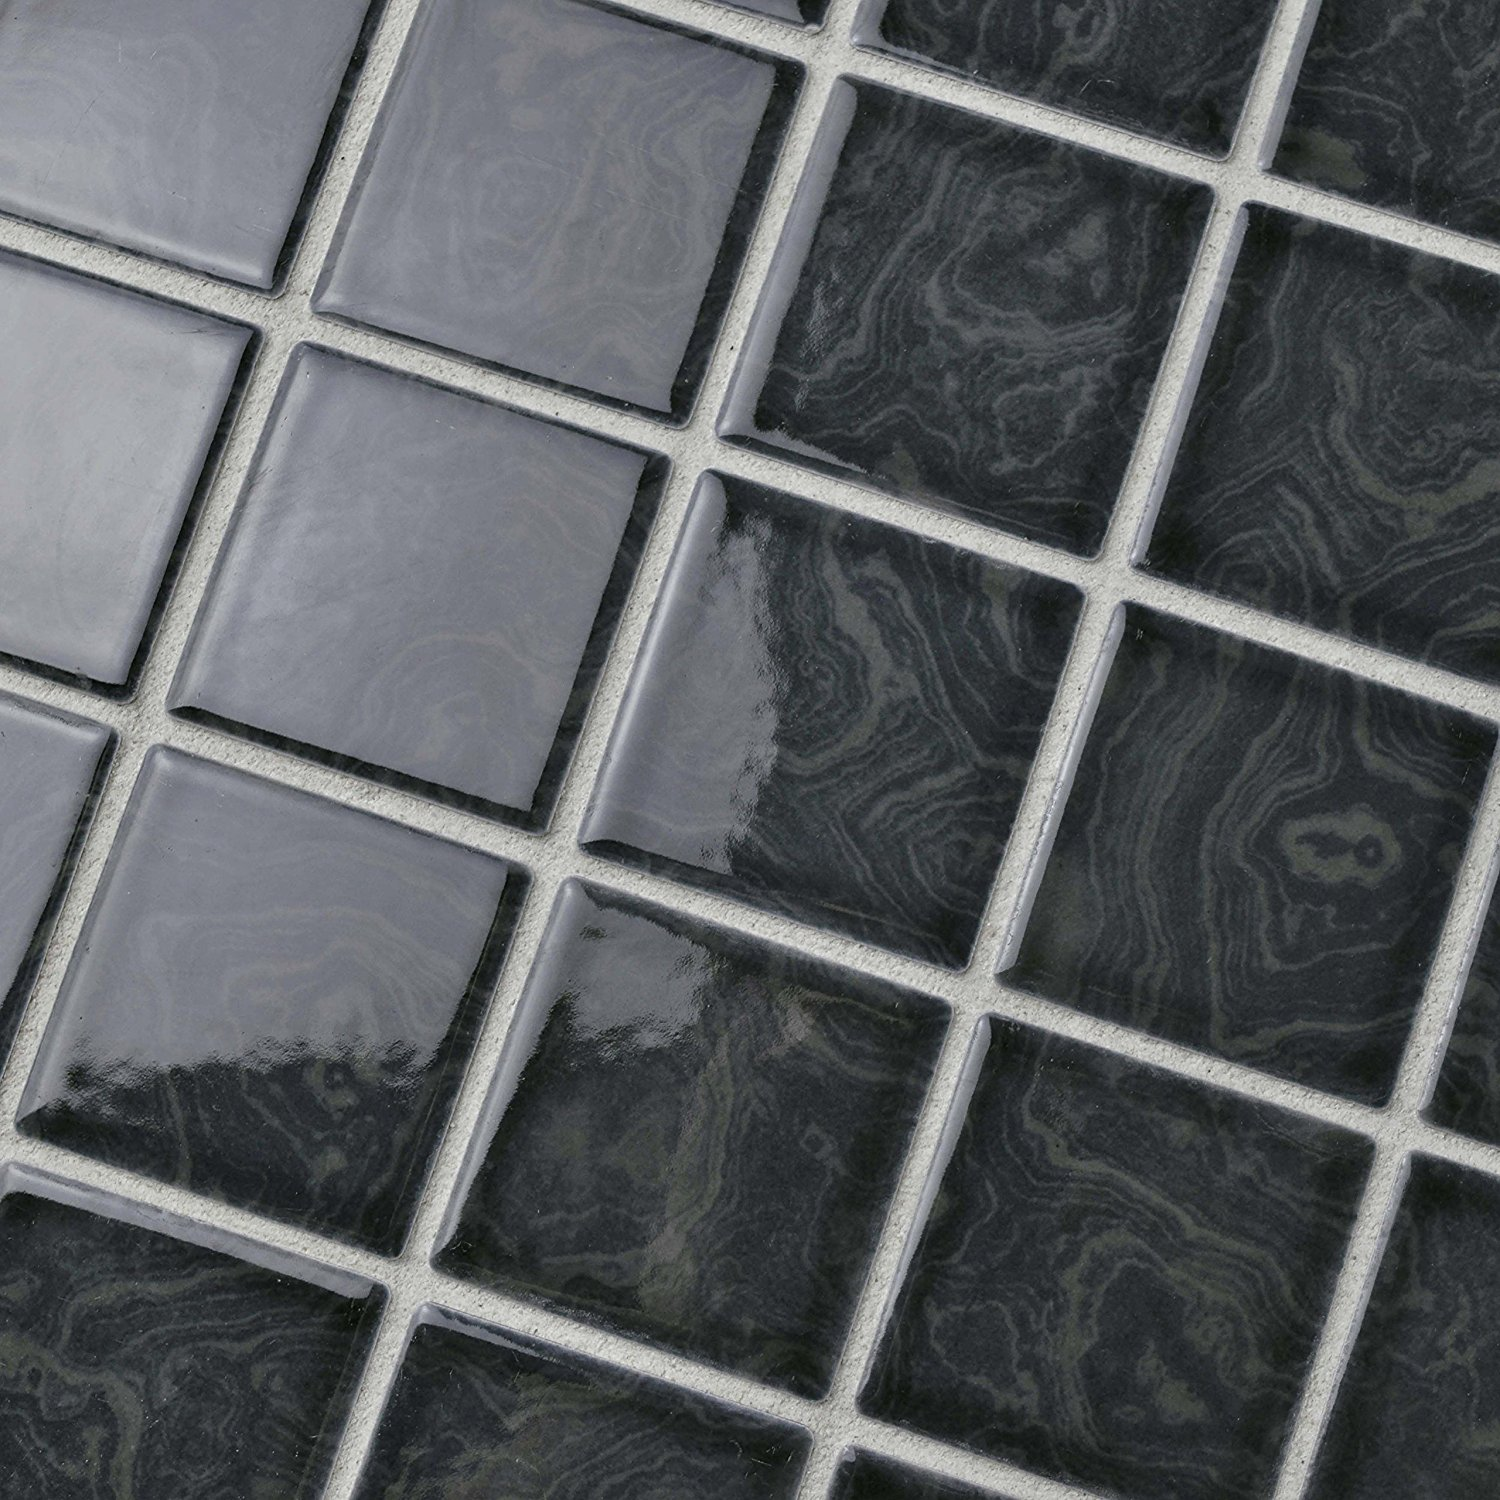 Porcelain vs ceramic tile the tile home guide ceramic is also typically chosen for upgrading an area that already has older ceramic tiles installed this will help make sure that the newer ones blend dailygadgetfo Images